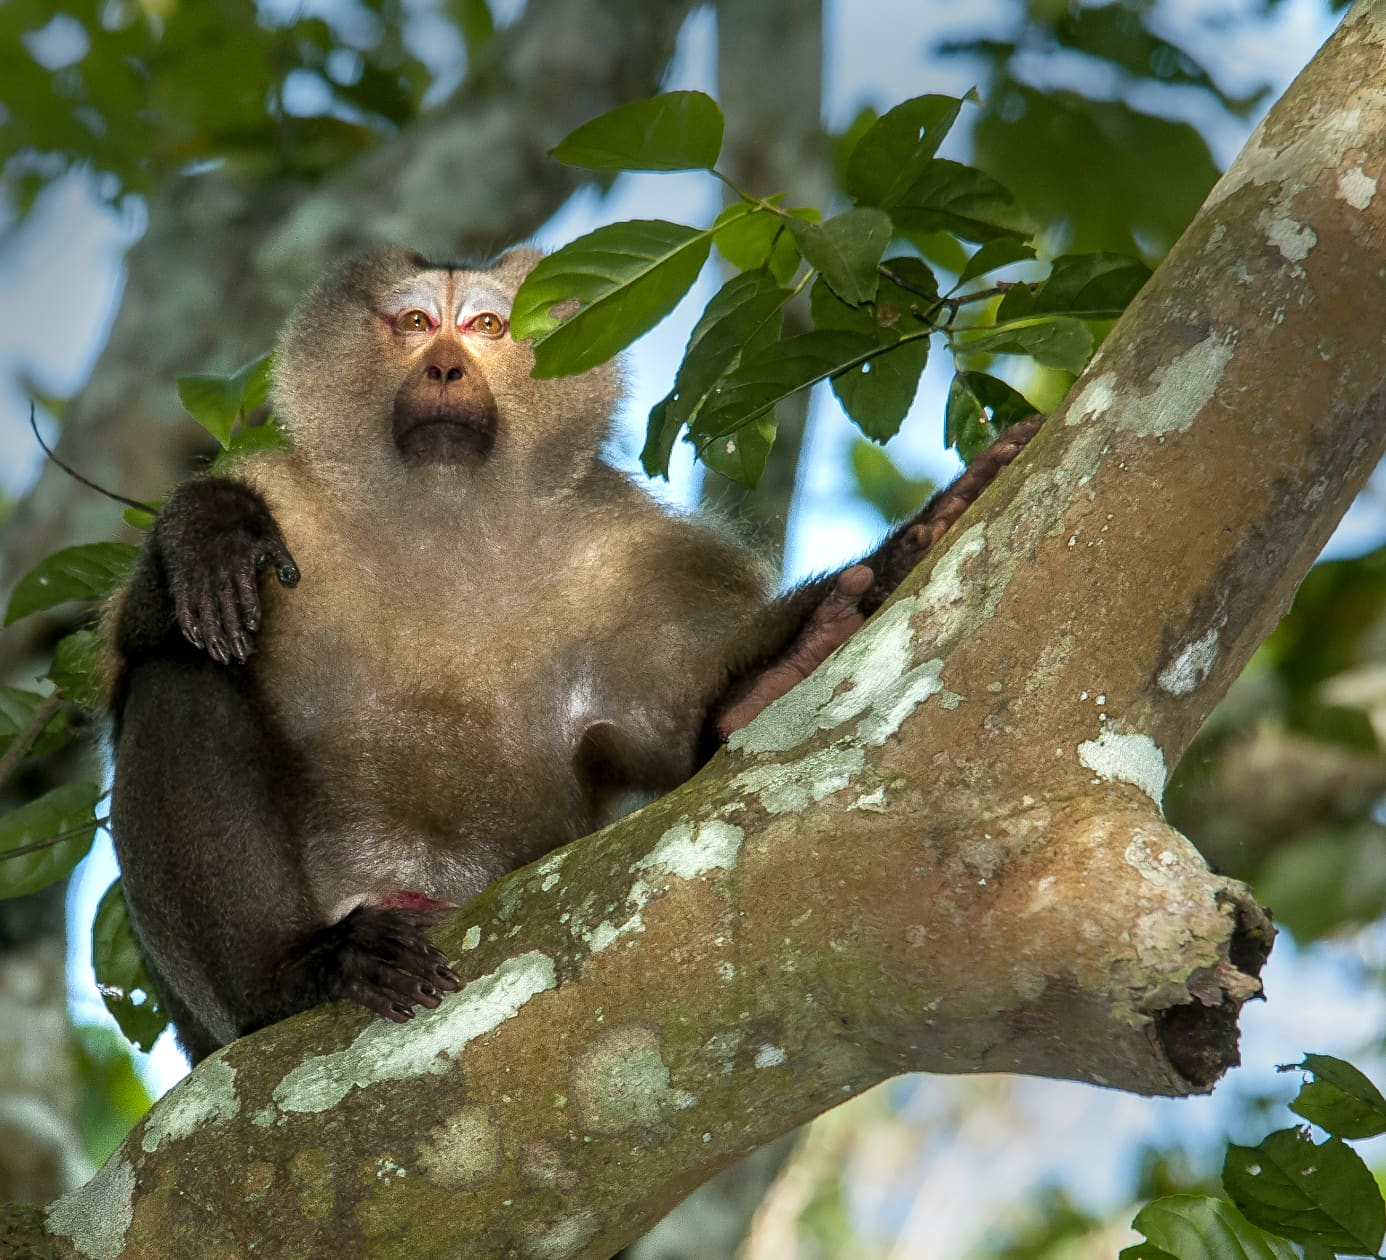 Pig-tailed Macaque: Elusive Monkey of the Deep Forest